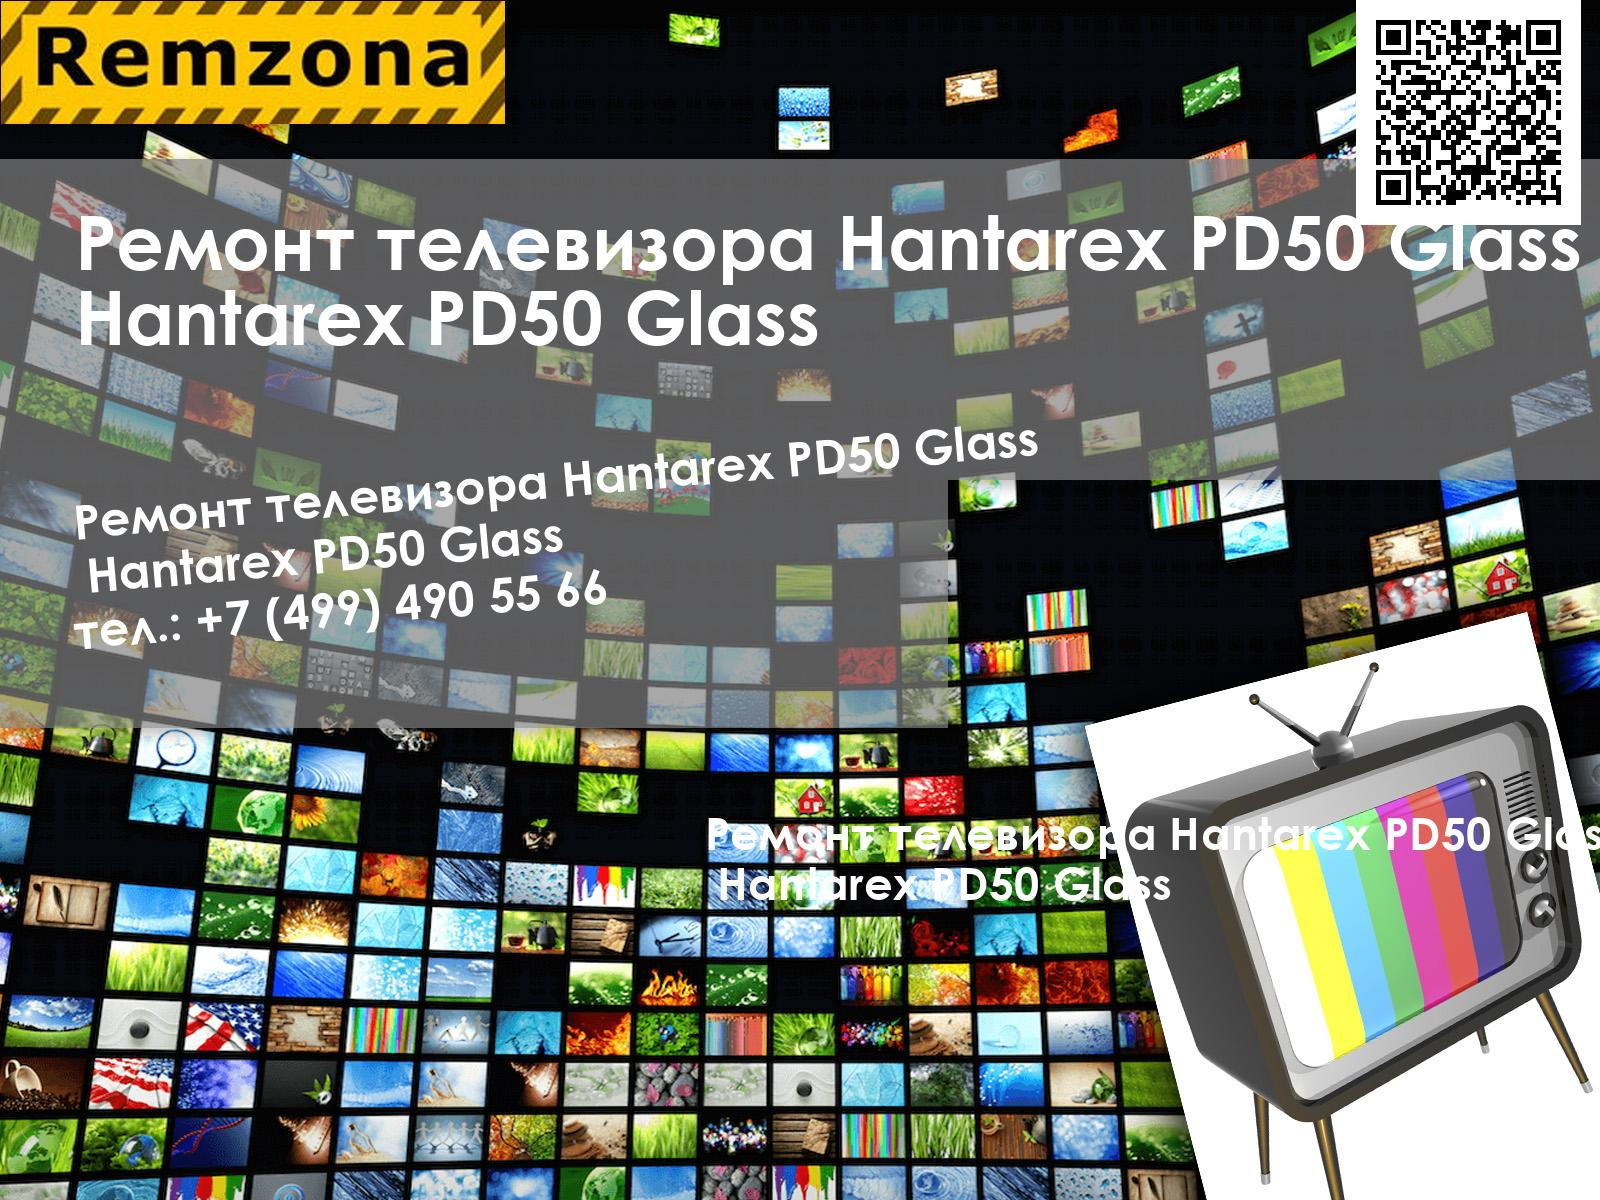 Ремонт телевизора Hantarex PD50 Glass